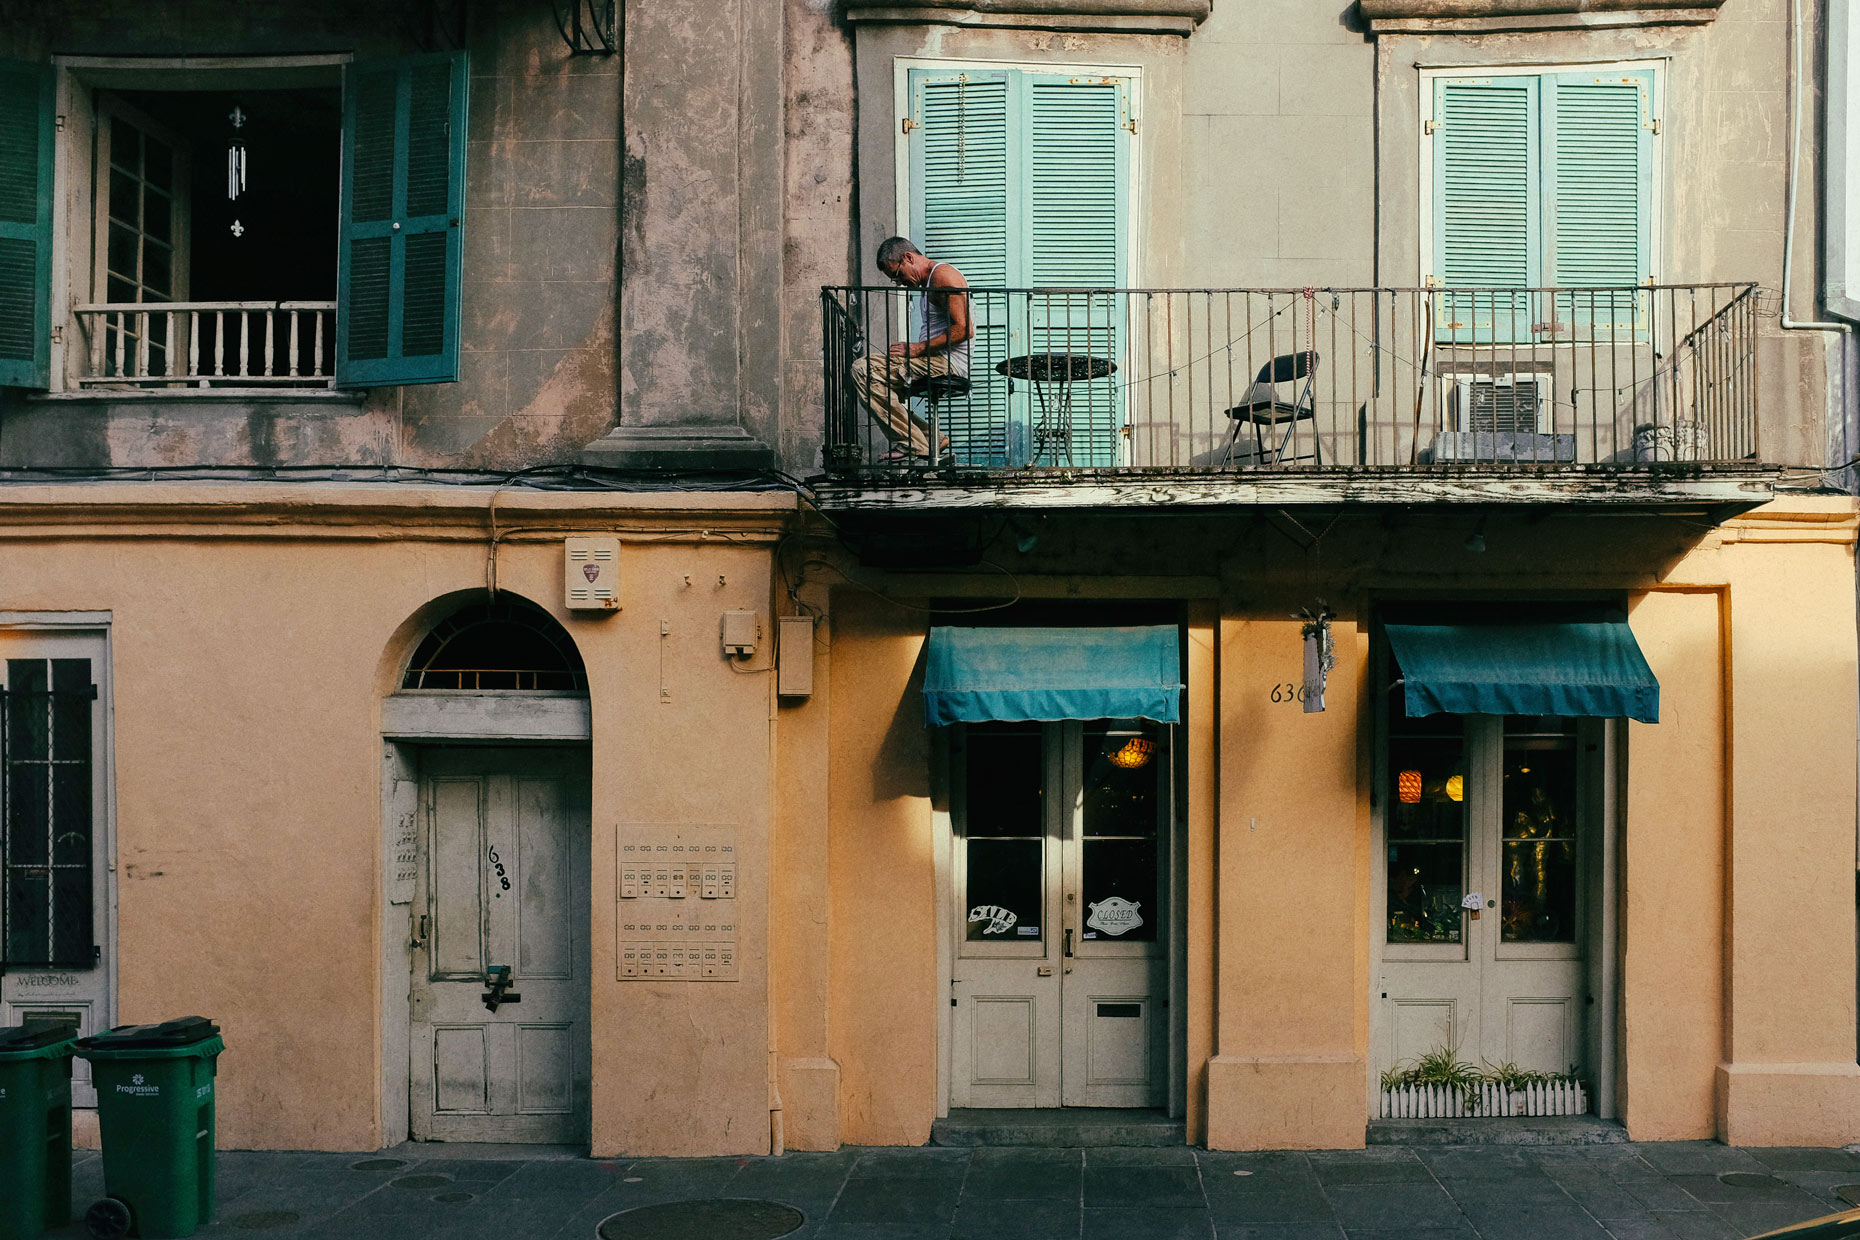 Street scene in New Orleans by photographer Kevin Brown